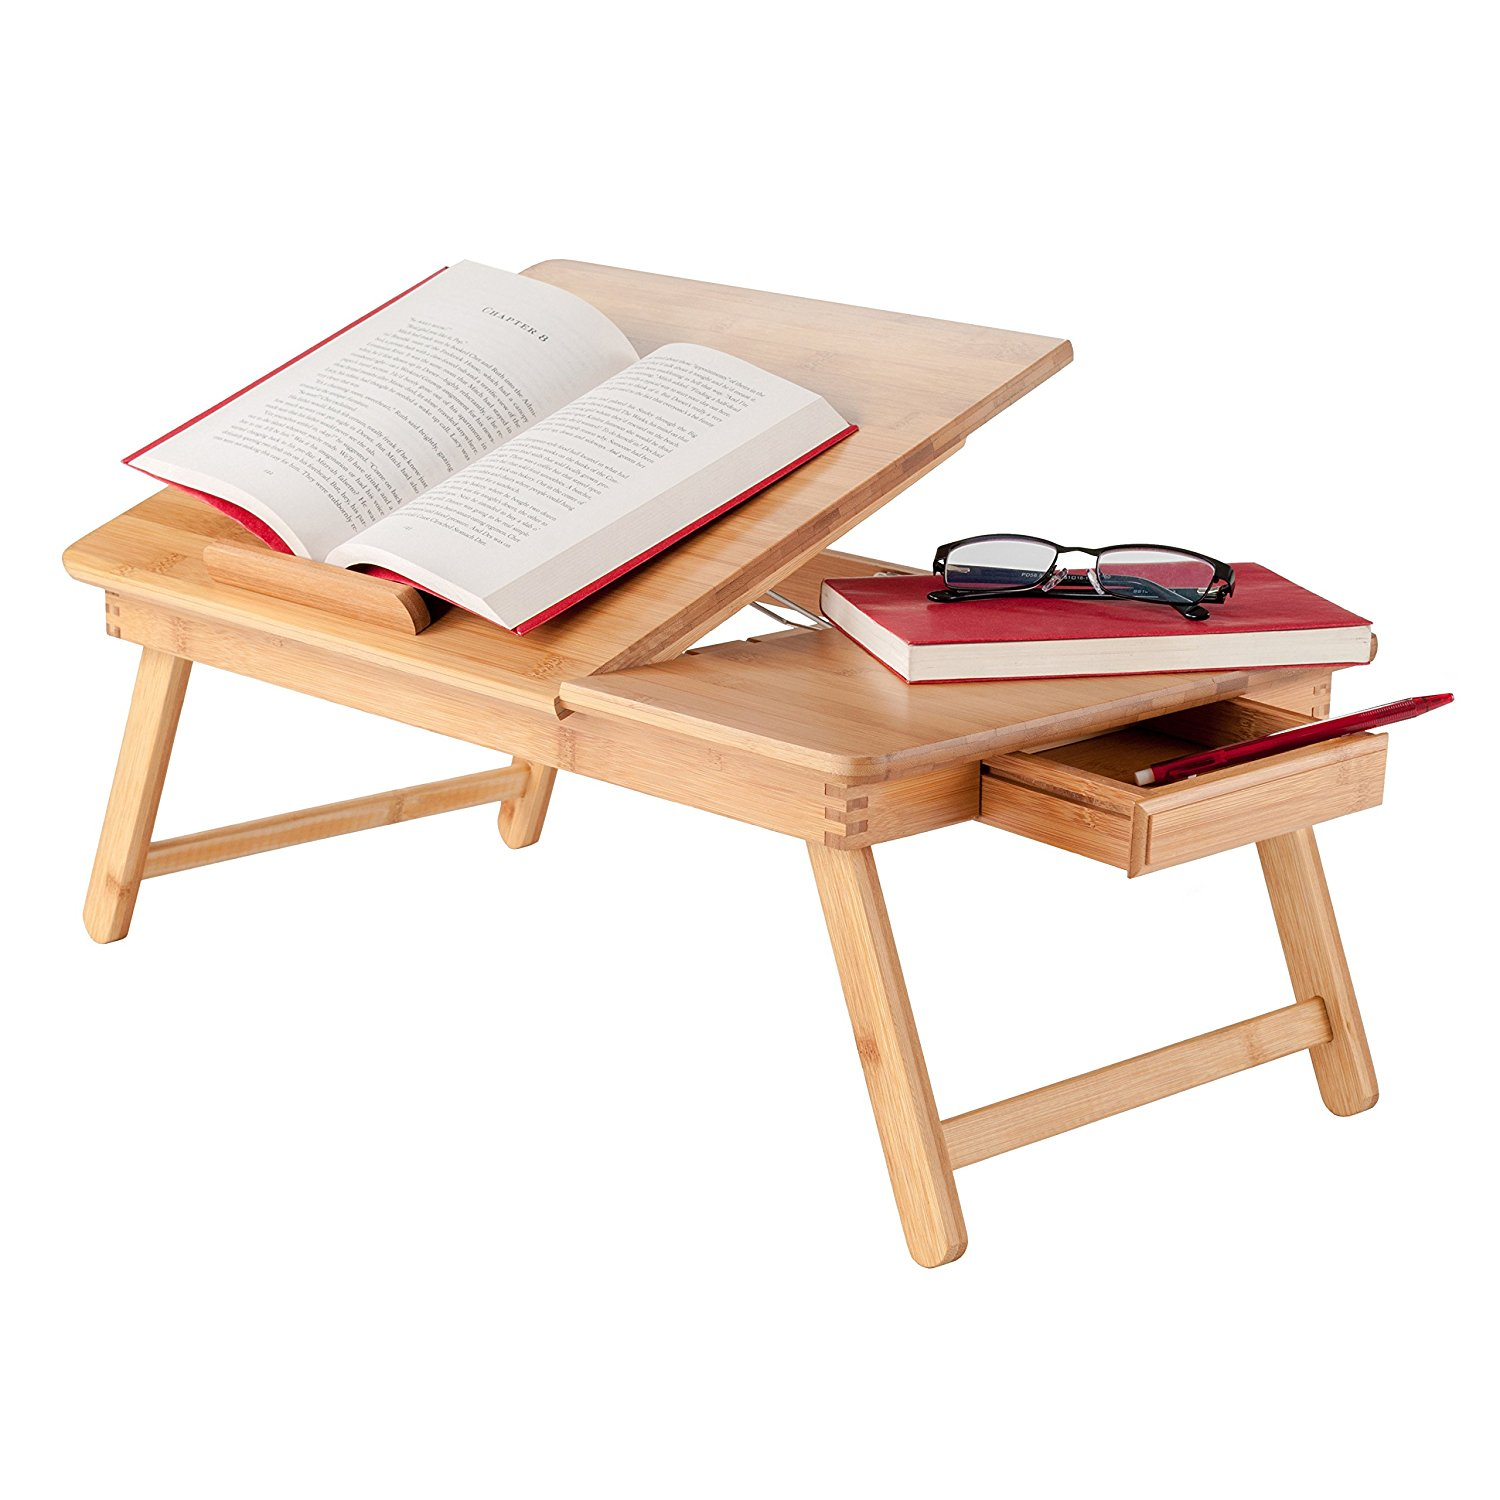 My Bamboo Folding Lap Desk Table Tray Laptop Books Snack Breakfast In Bed Serving Buy Bamboo Folding Lap Desk Table Tray Laptop Books Snack Breakfast In Bed Serving Laptop Bamboo Computer Lap